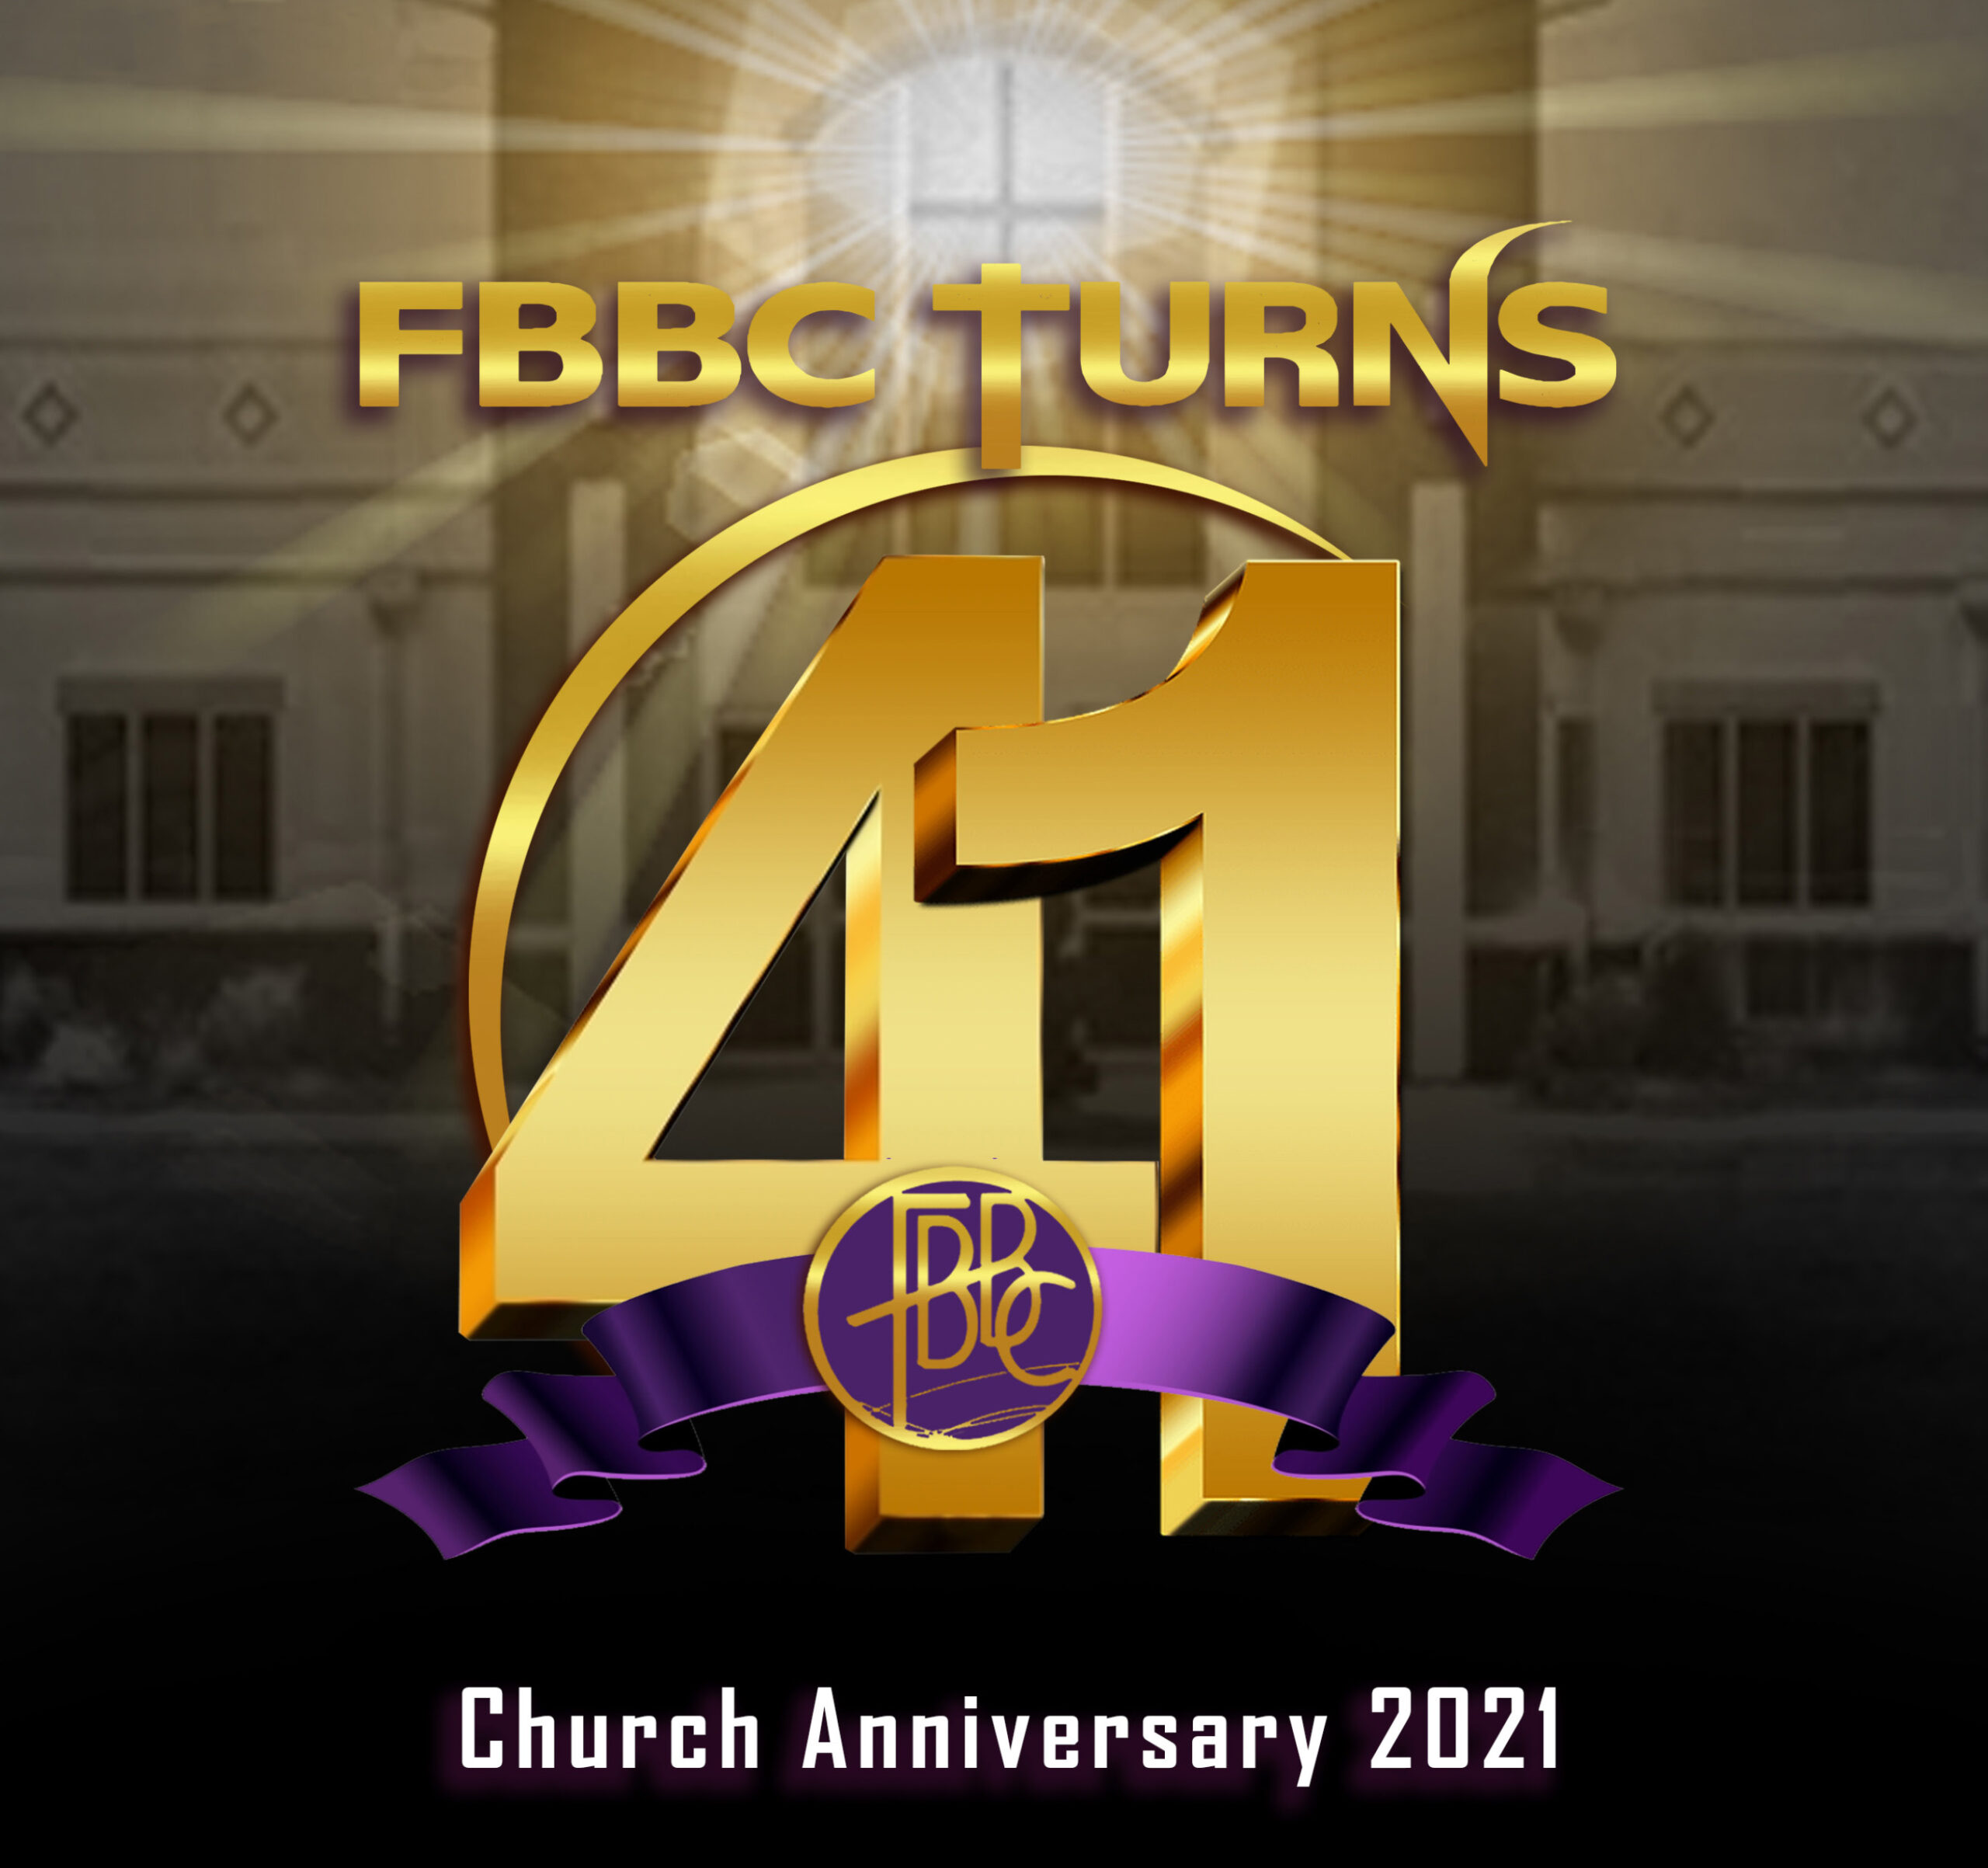 FBBC 41st Church Anniversary